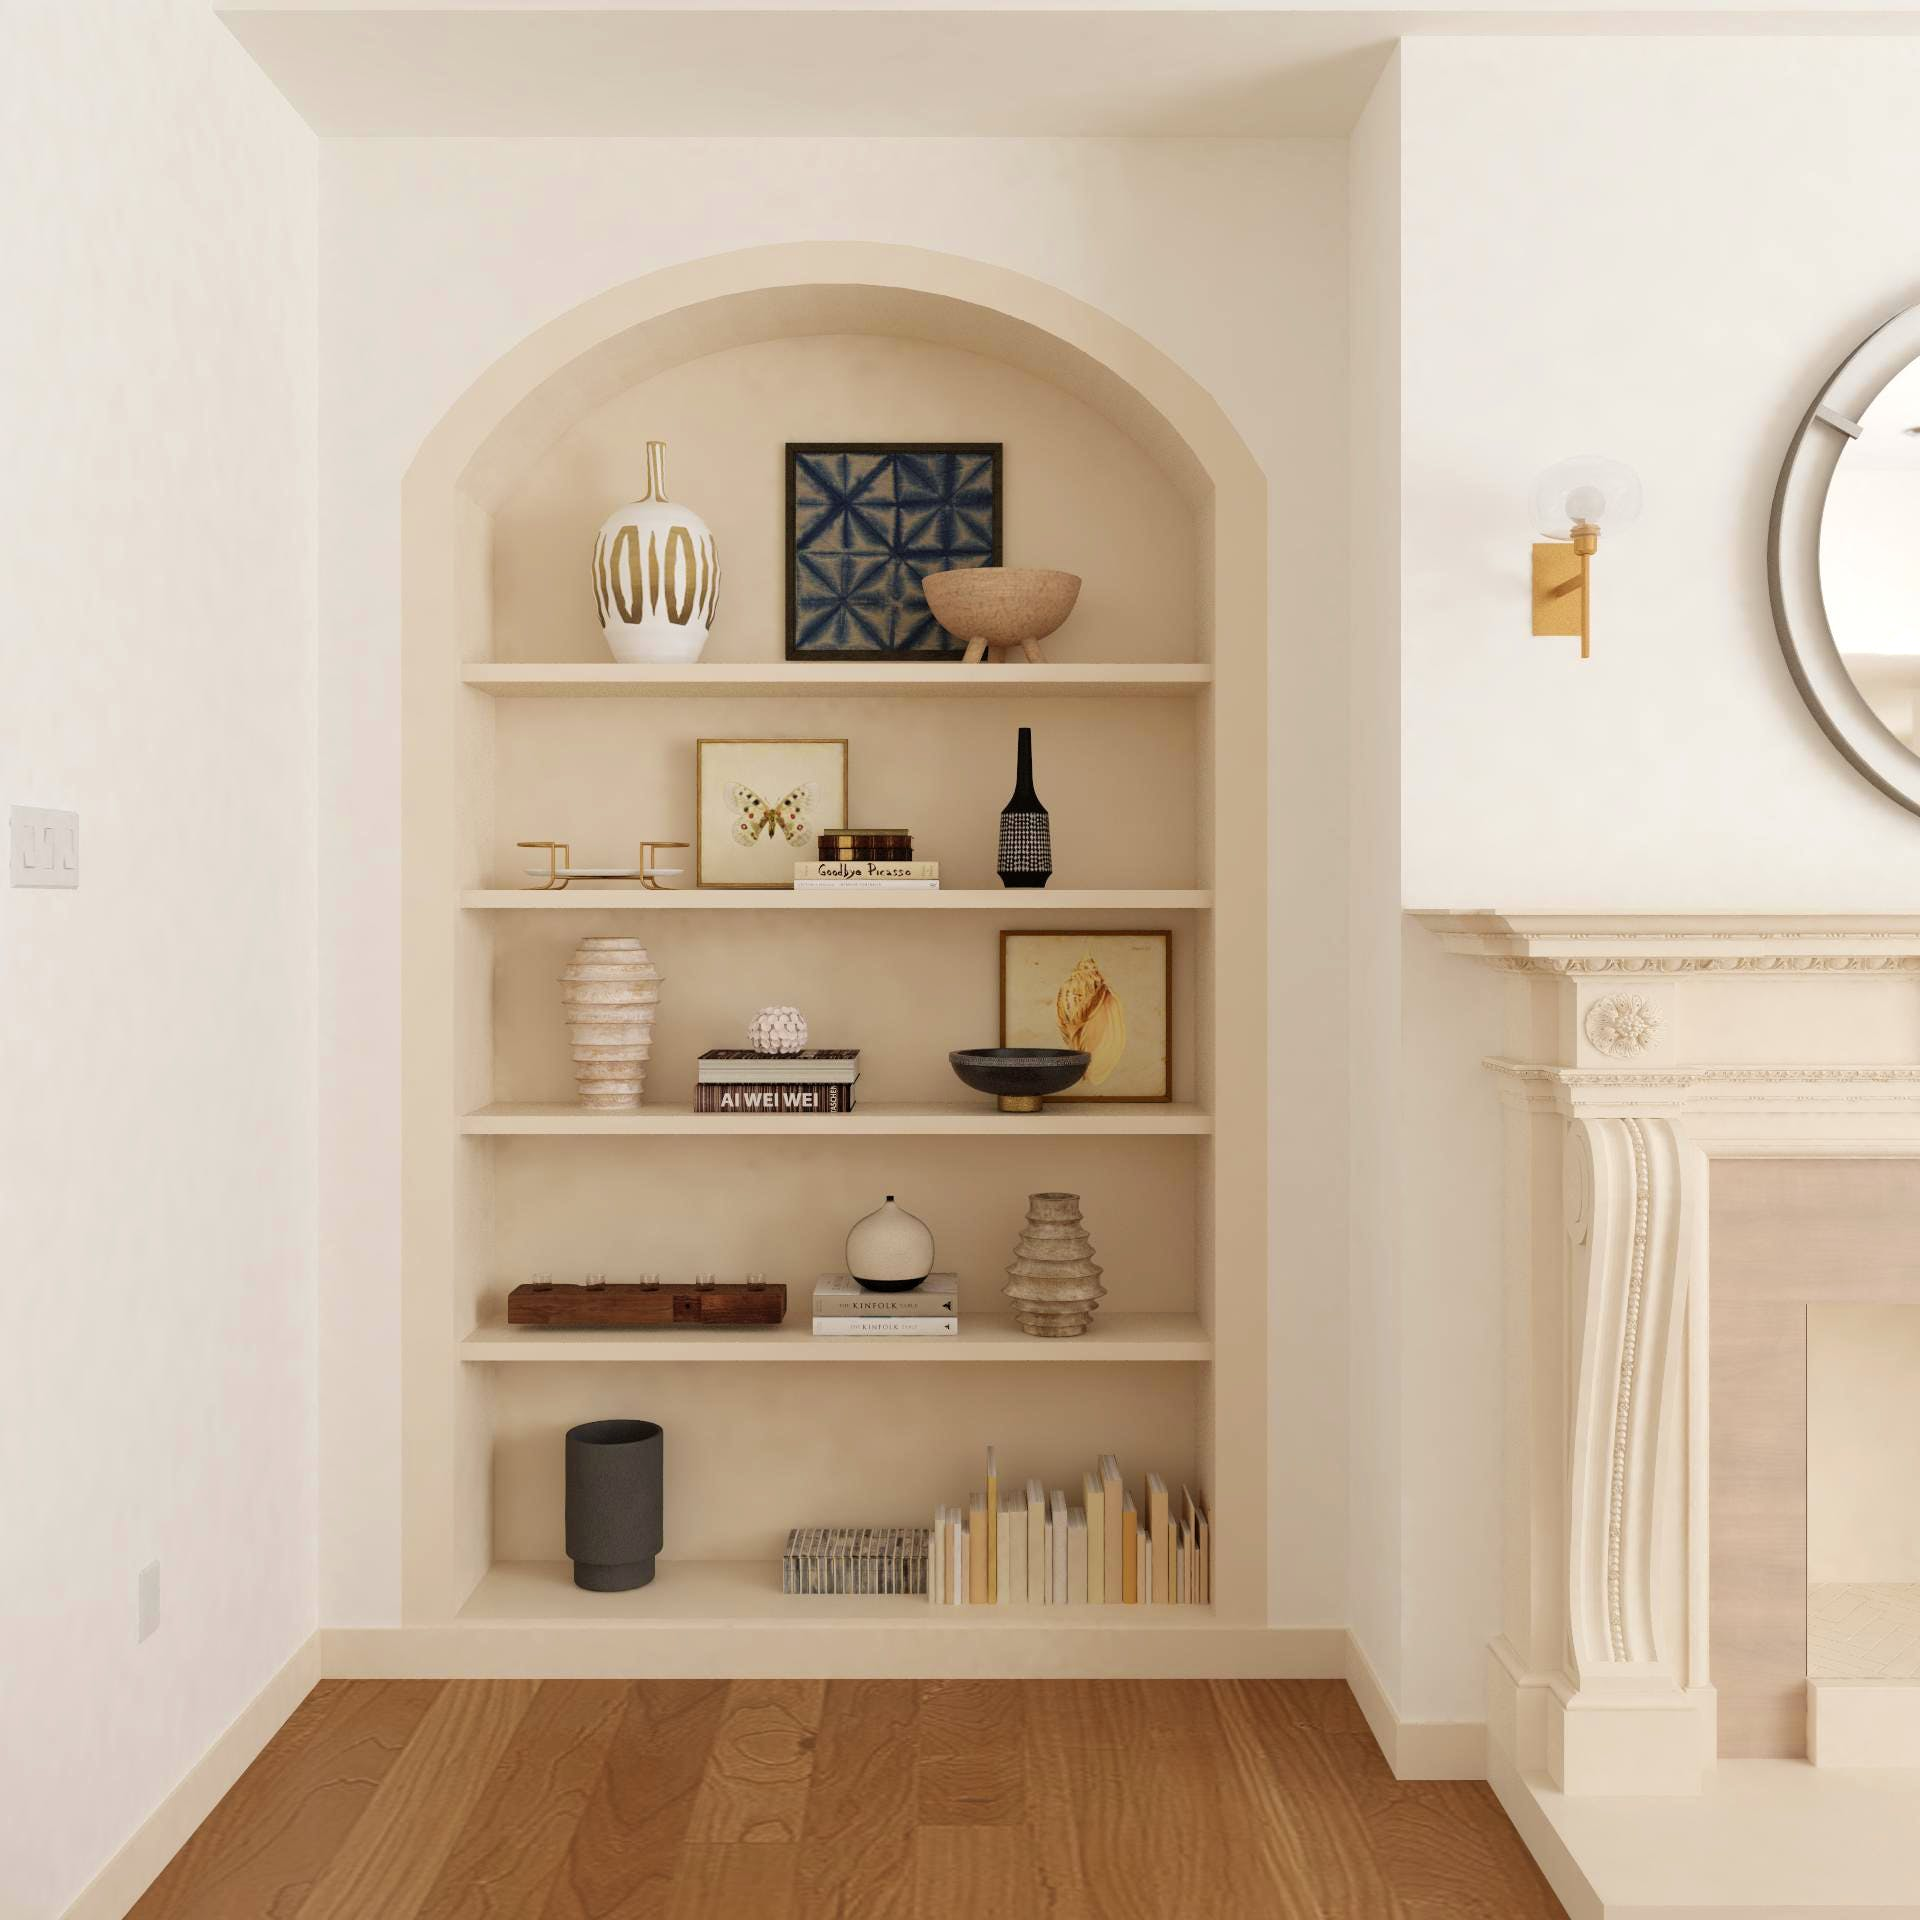 Shelves With Eclectic Decor